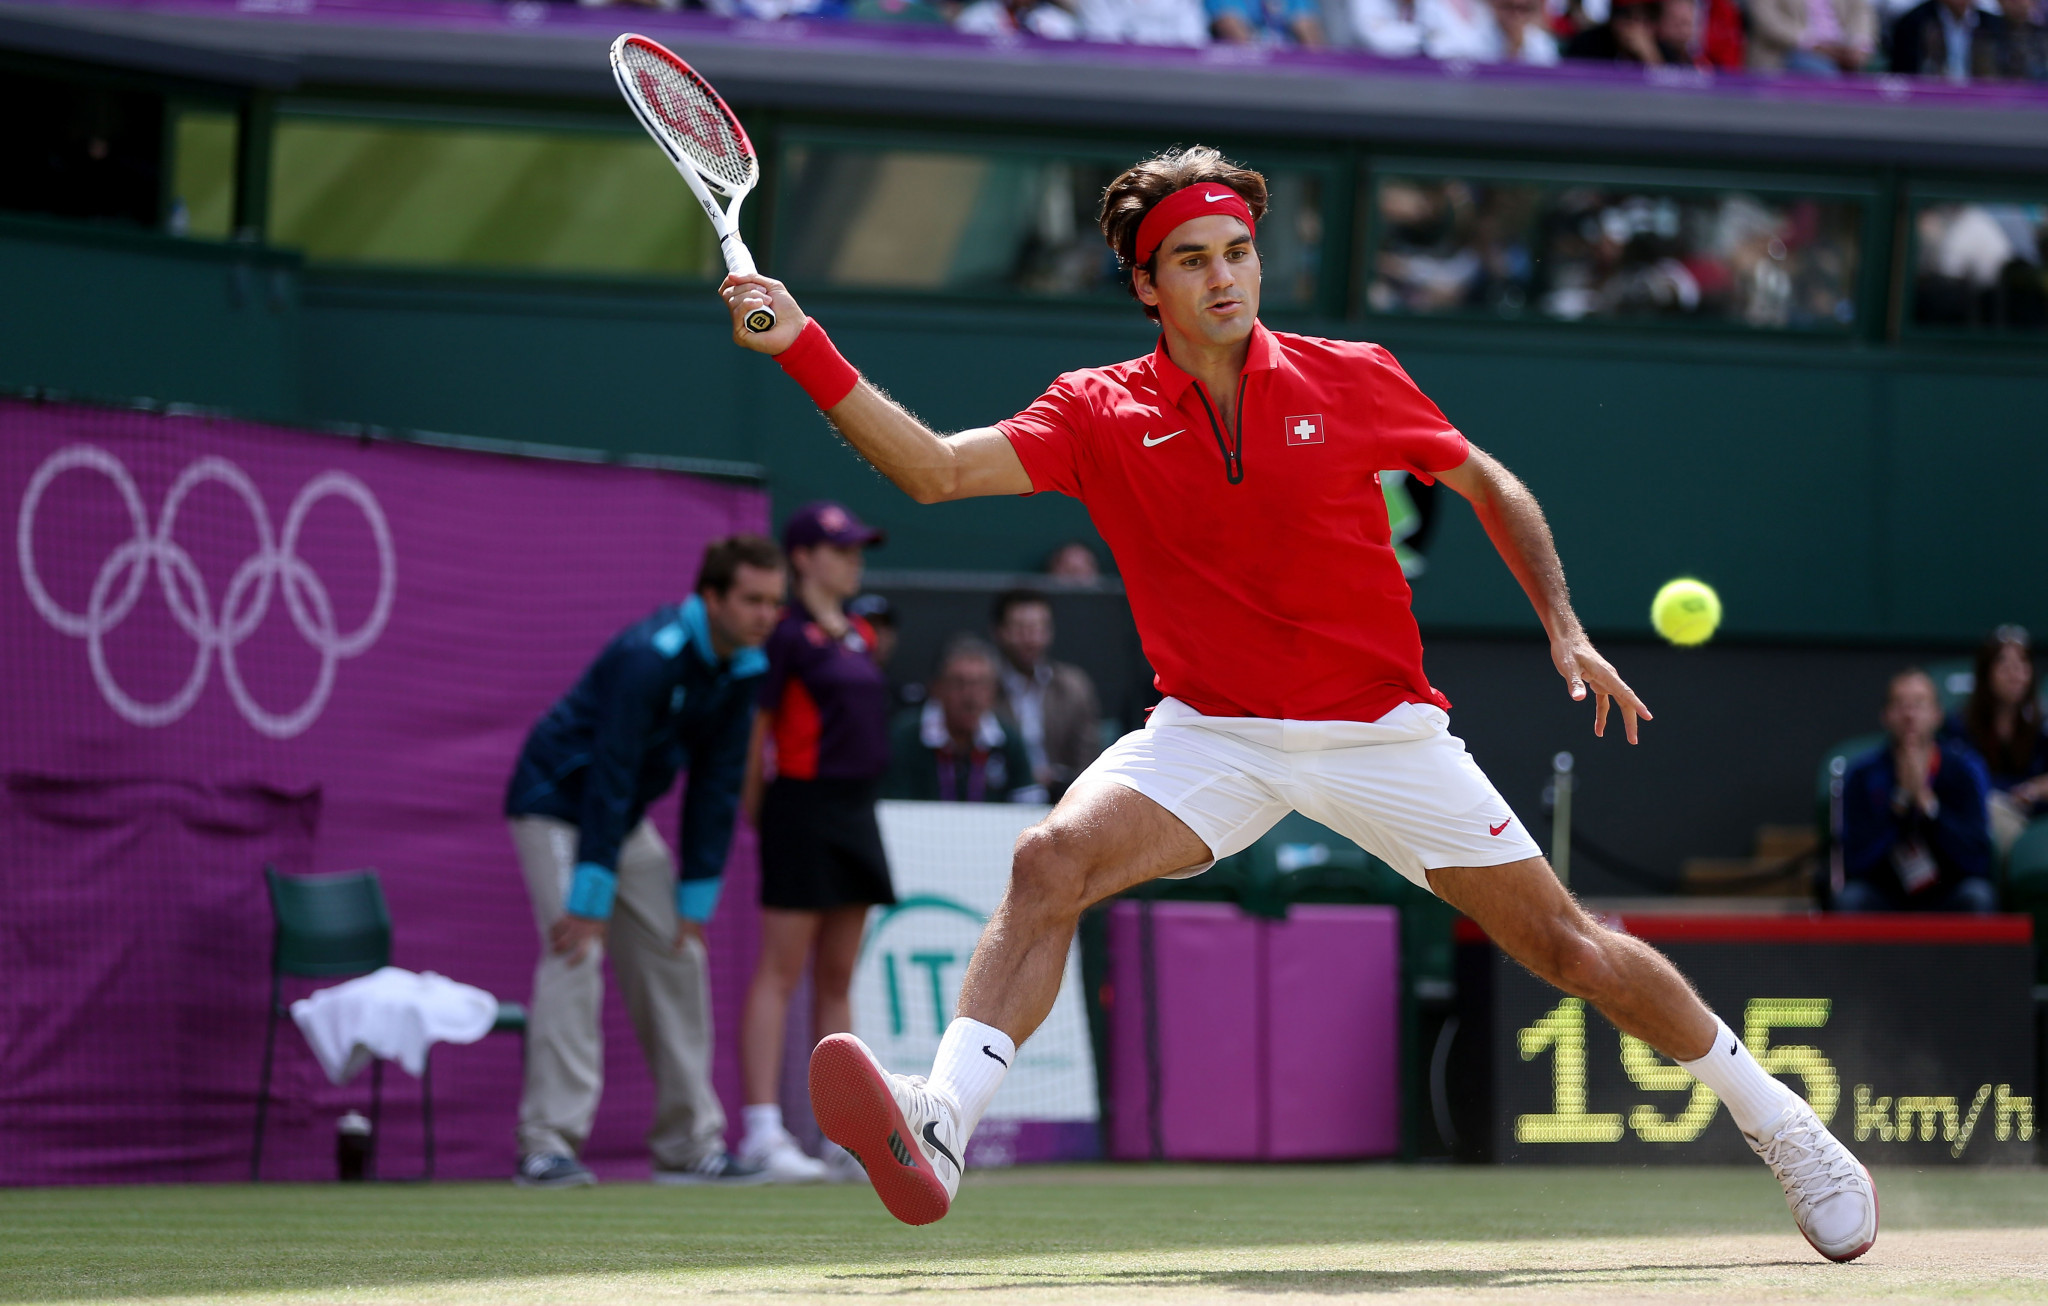 Roger Federer's best performance in the singles at the Olympics was a silver at London 2012 ©Getty Images